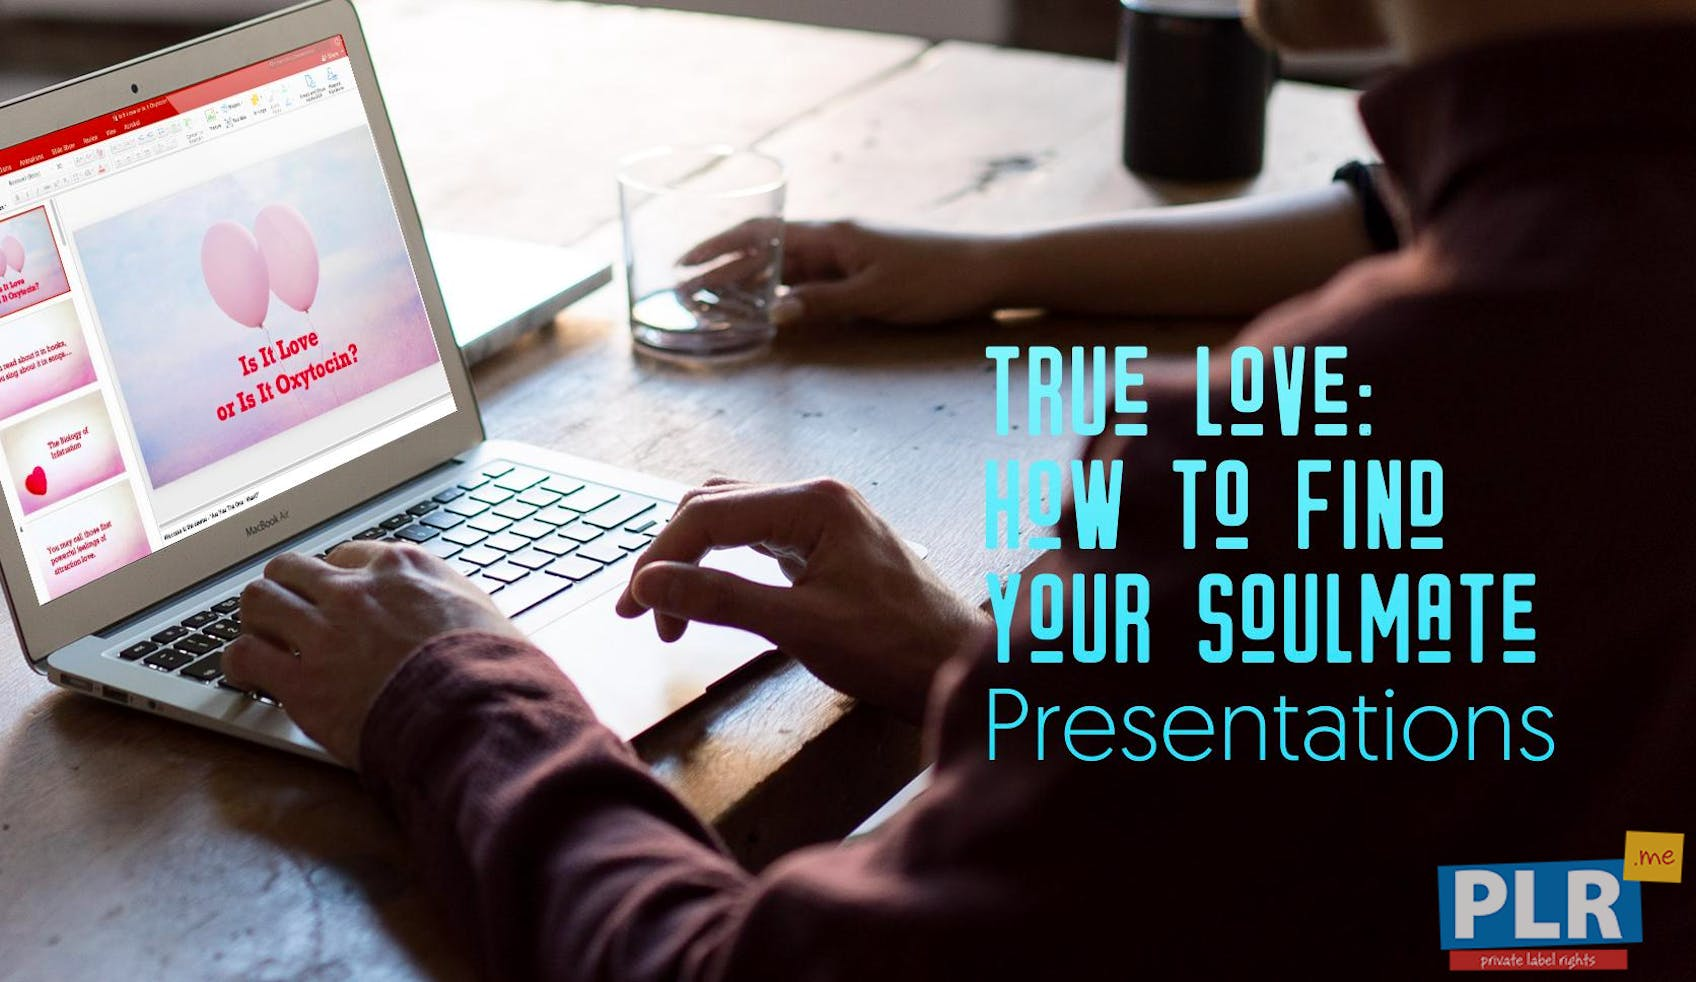 True Love: How To Find Your Soulmate - Presentations